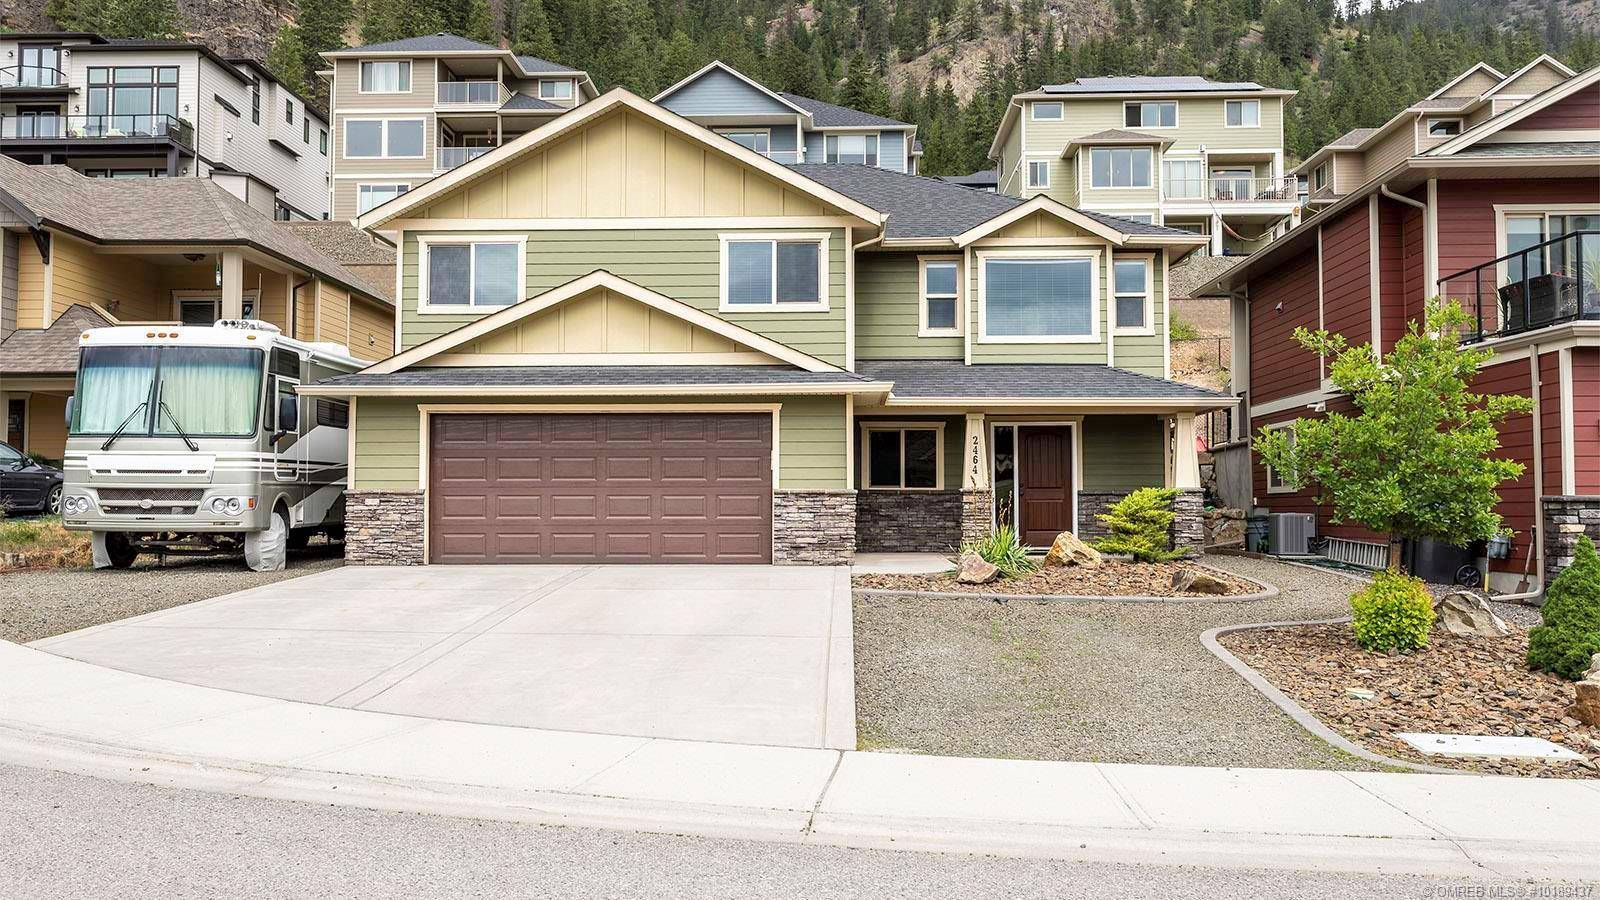 House for sale at 2464 Ryser Pl West Kelowna British Columbia - MLS: 10189437